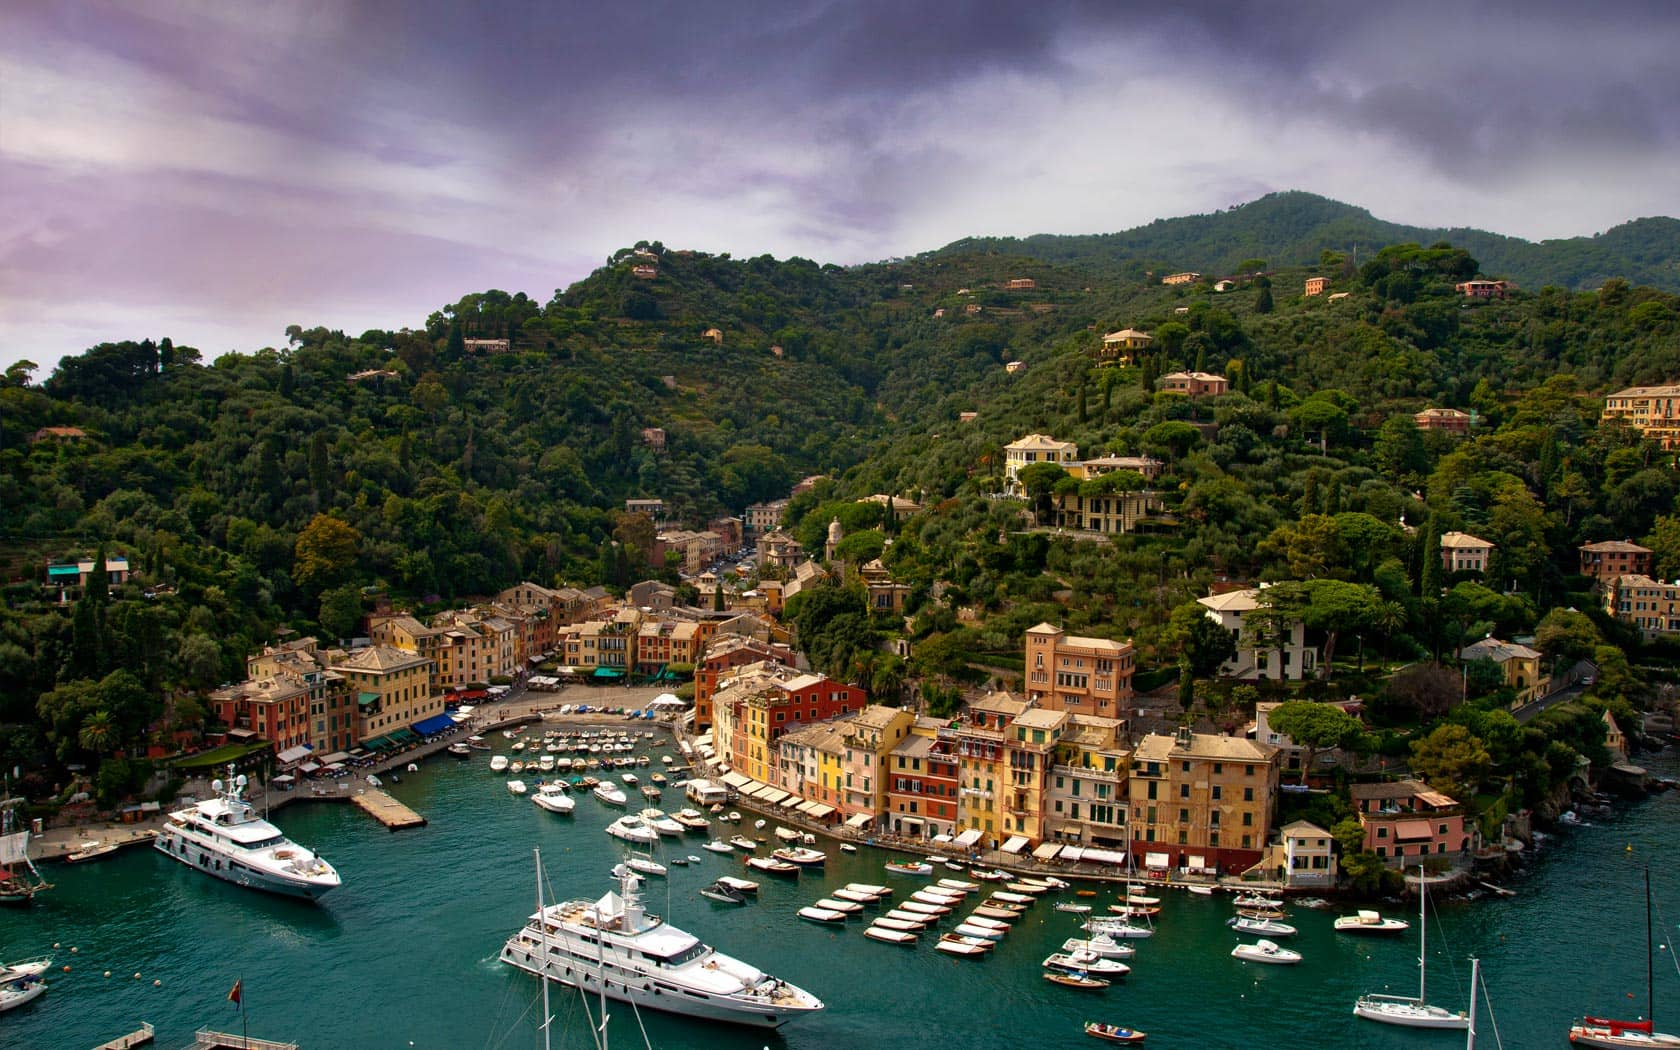 Tours Starting From Portofino